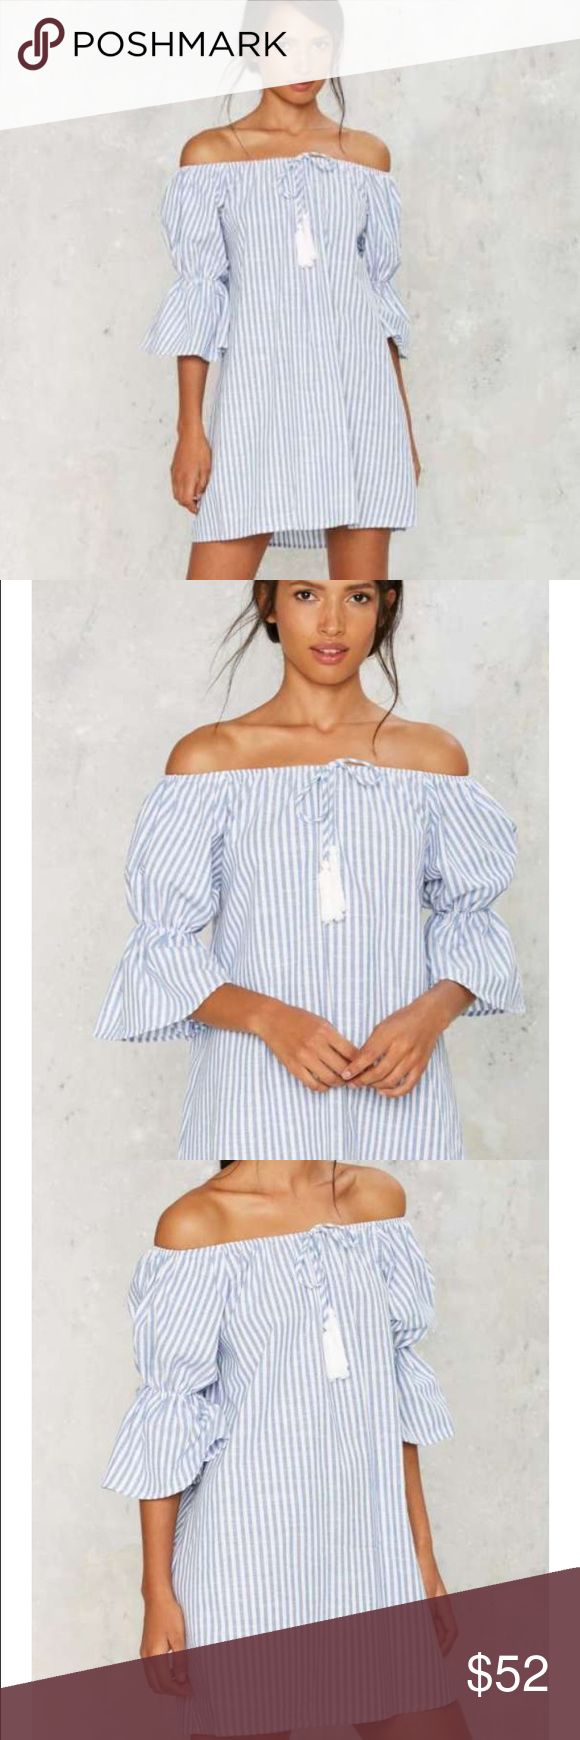 Neat as a pinstripe mini dress. Sold out. Vacation wardrobe solved. This dress features an A-line silhouette, blue and white stripe pattern, off-the-shoulder design, cropped poet sleeves, and tie with white tassels at neckline. Unlined.  *Cotton  *Runs true to size *Hand wash cold  *Imported Nasty Gal Dresses Mini